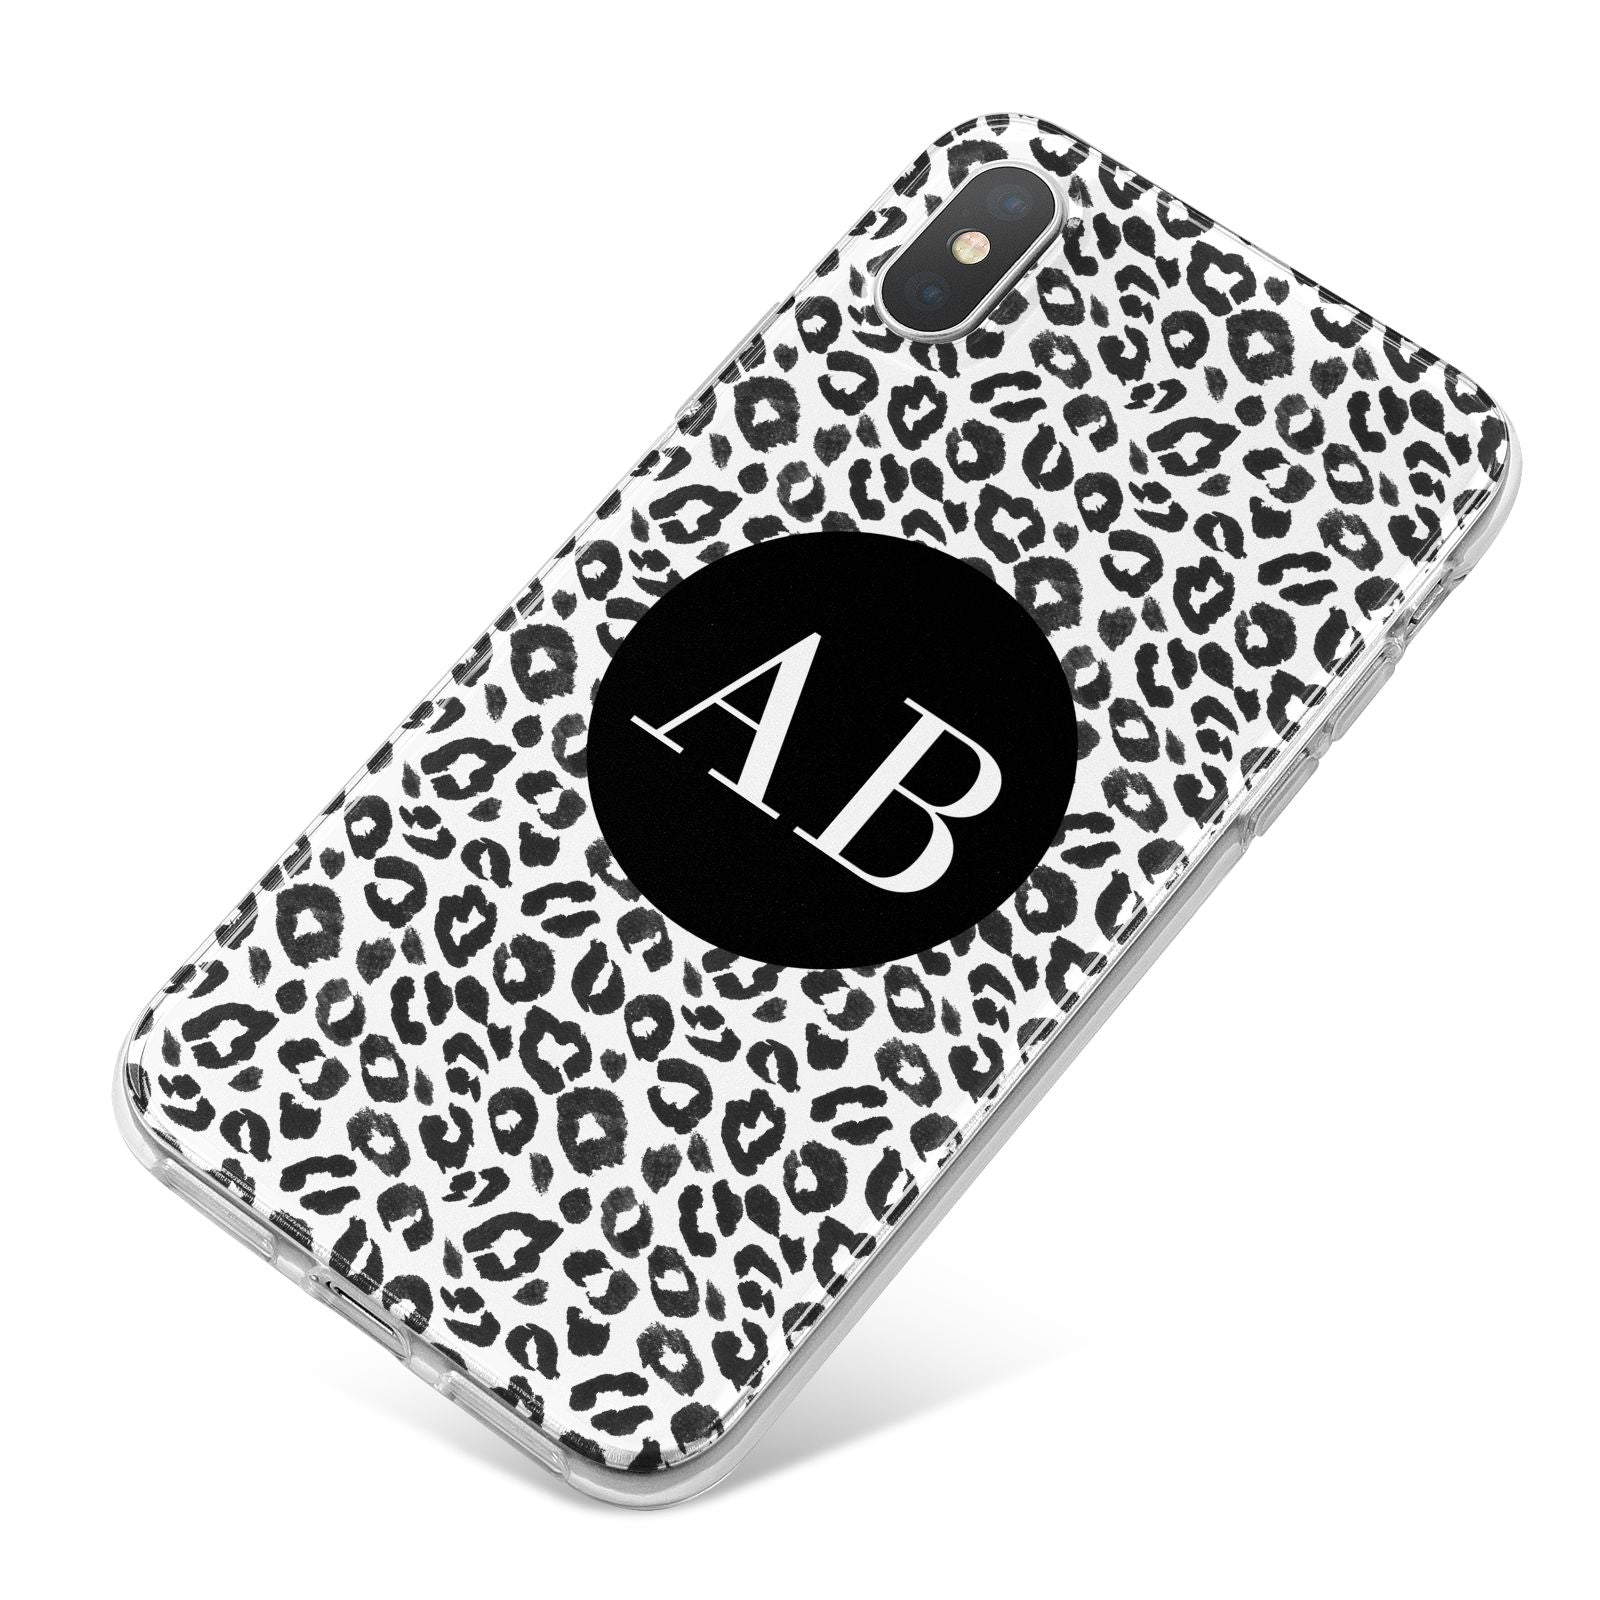 Leopard Print Black and White iPhone X Bumper Case on Silver iPhone